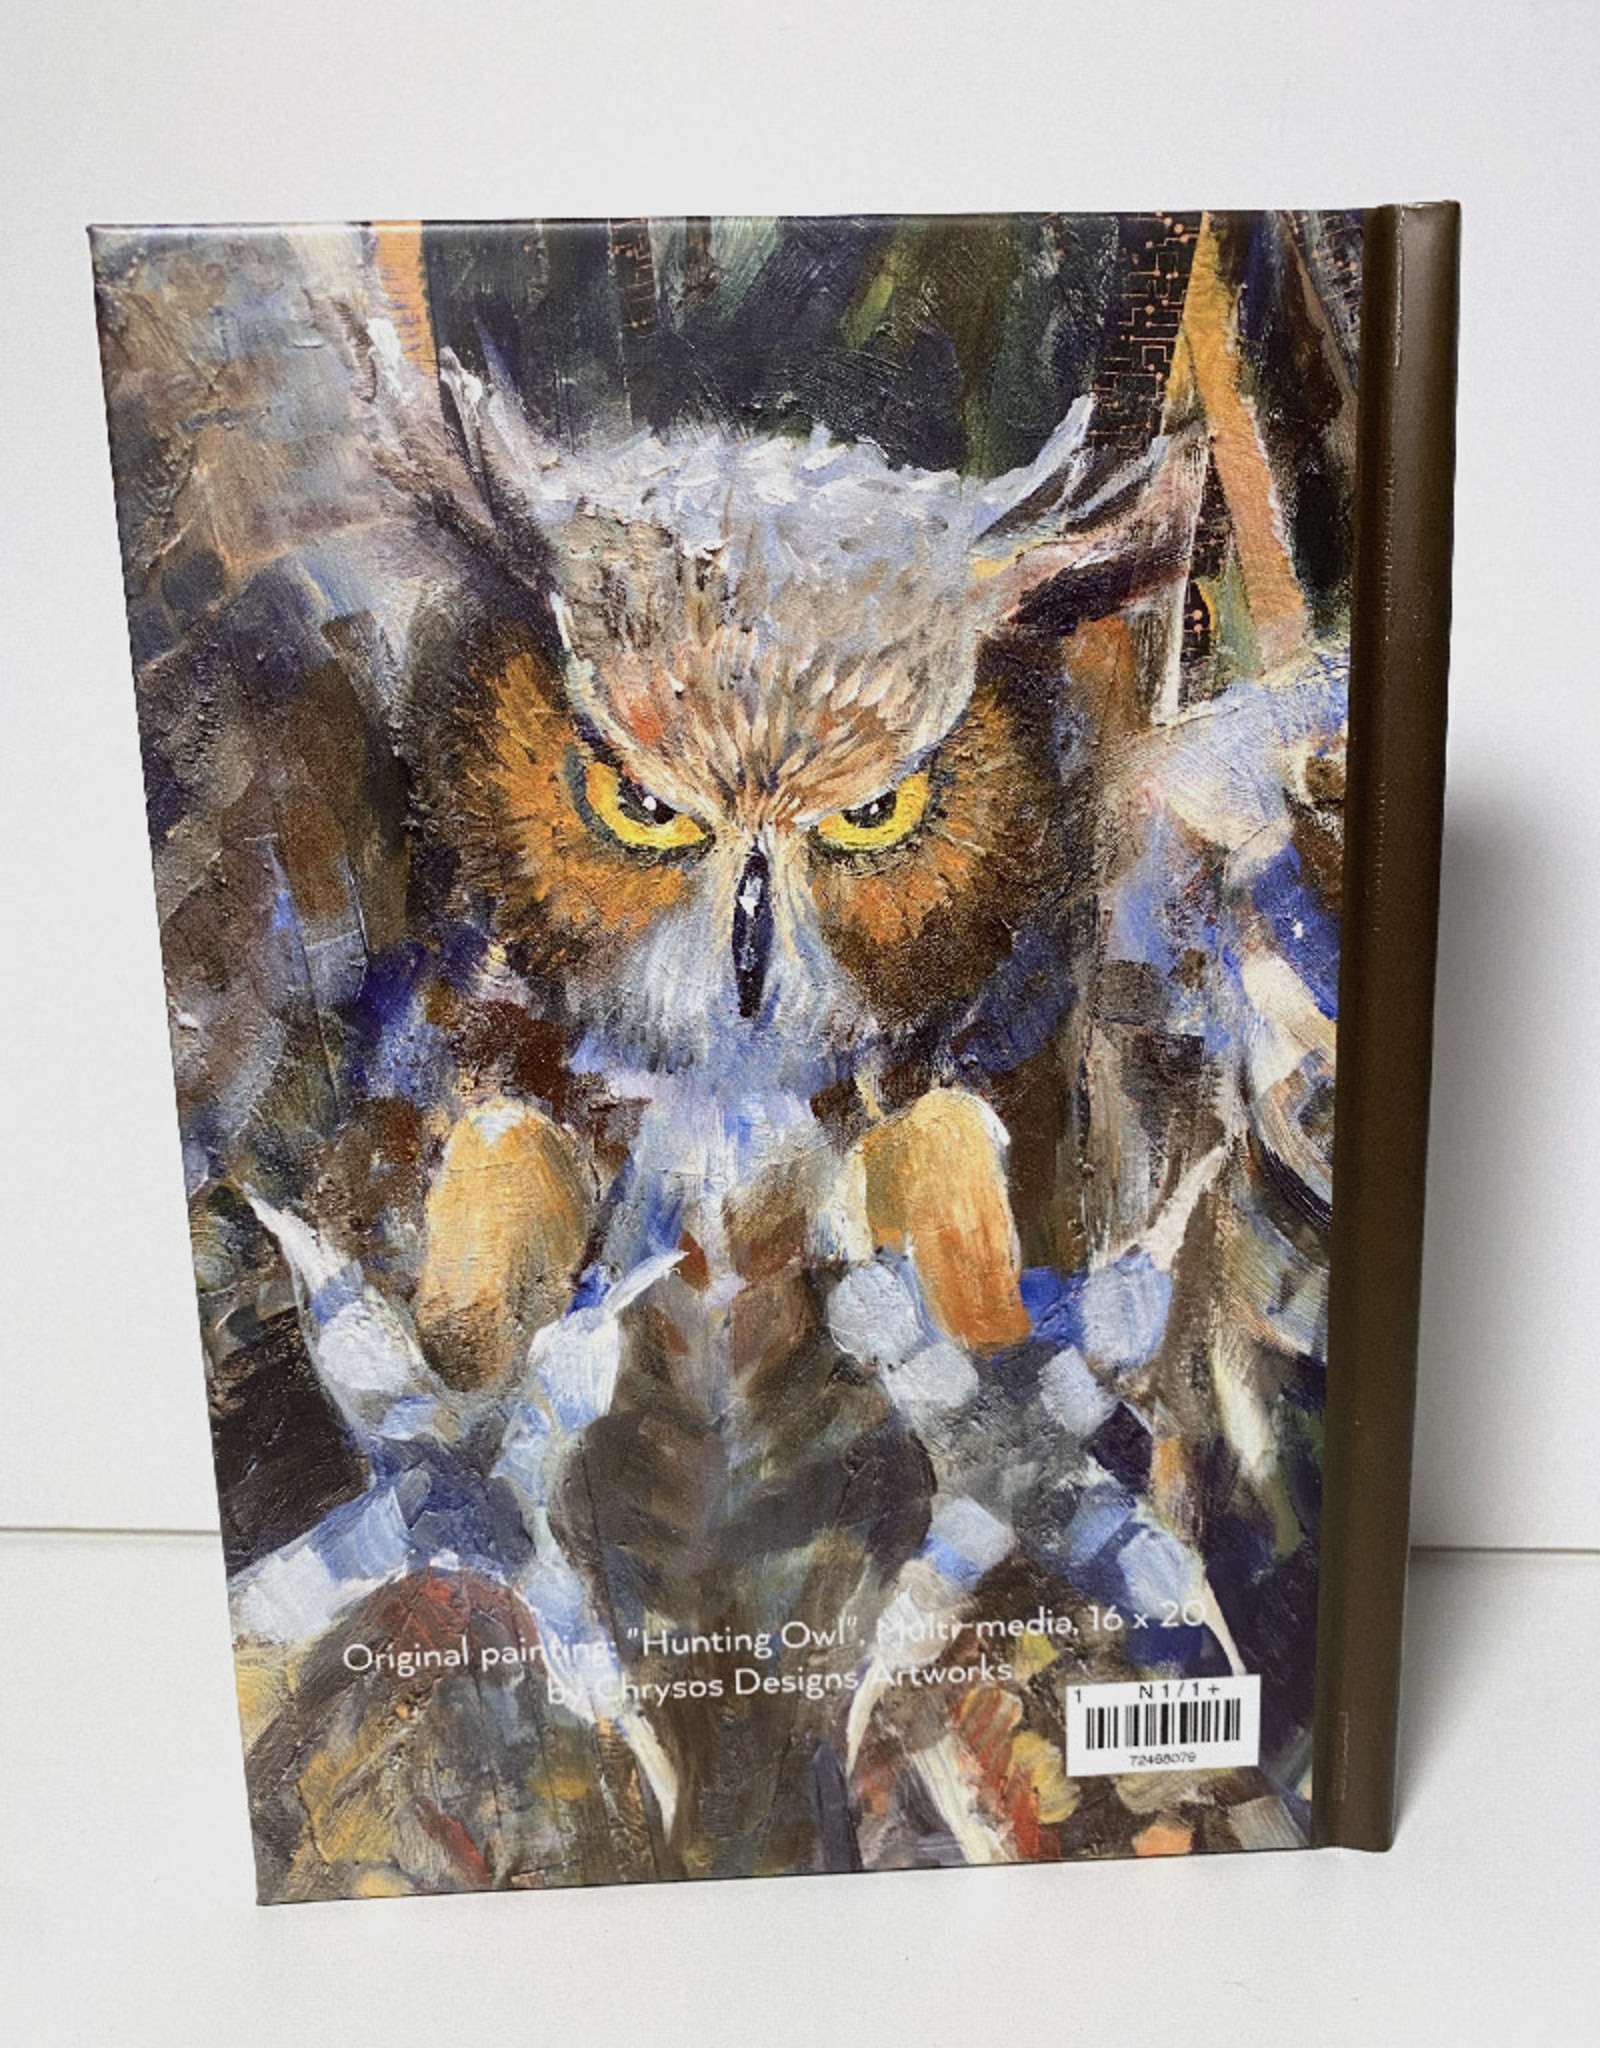 Jennifer Cook-Chrysos Chrysos Designs Artworks, hardcover journal, 6 x 8, owl